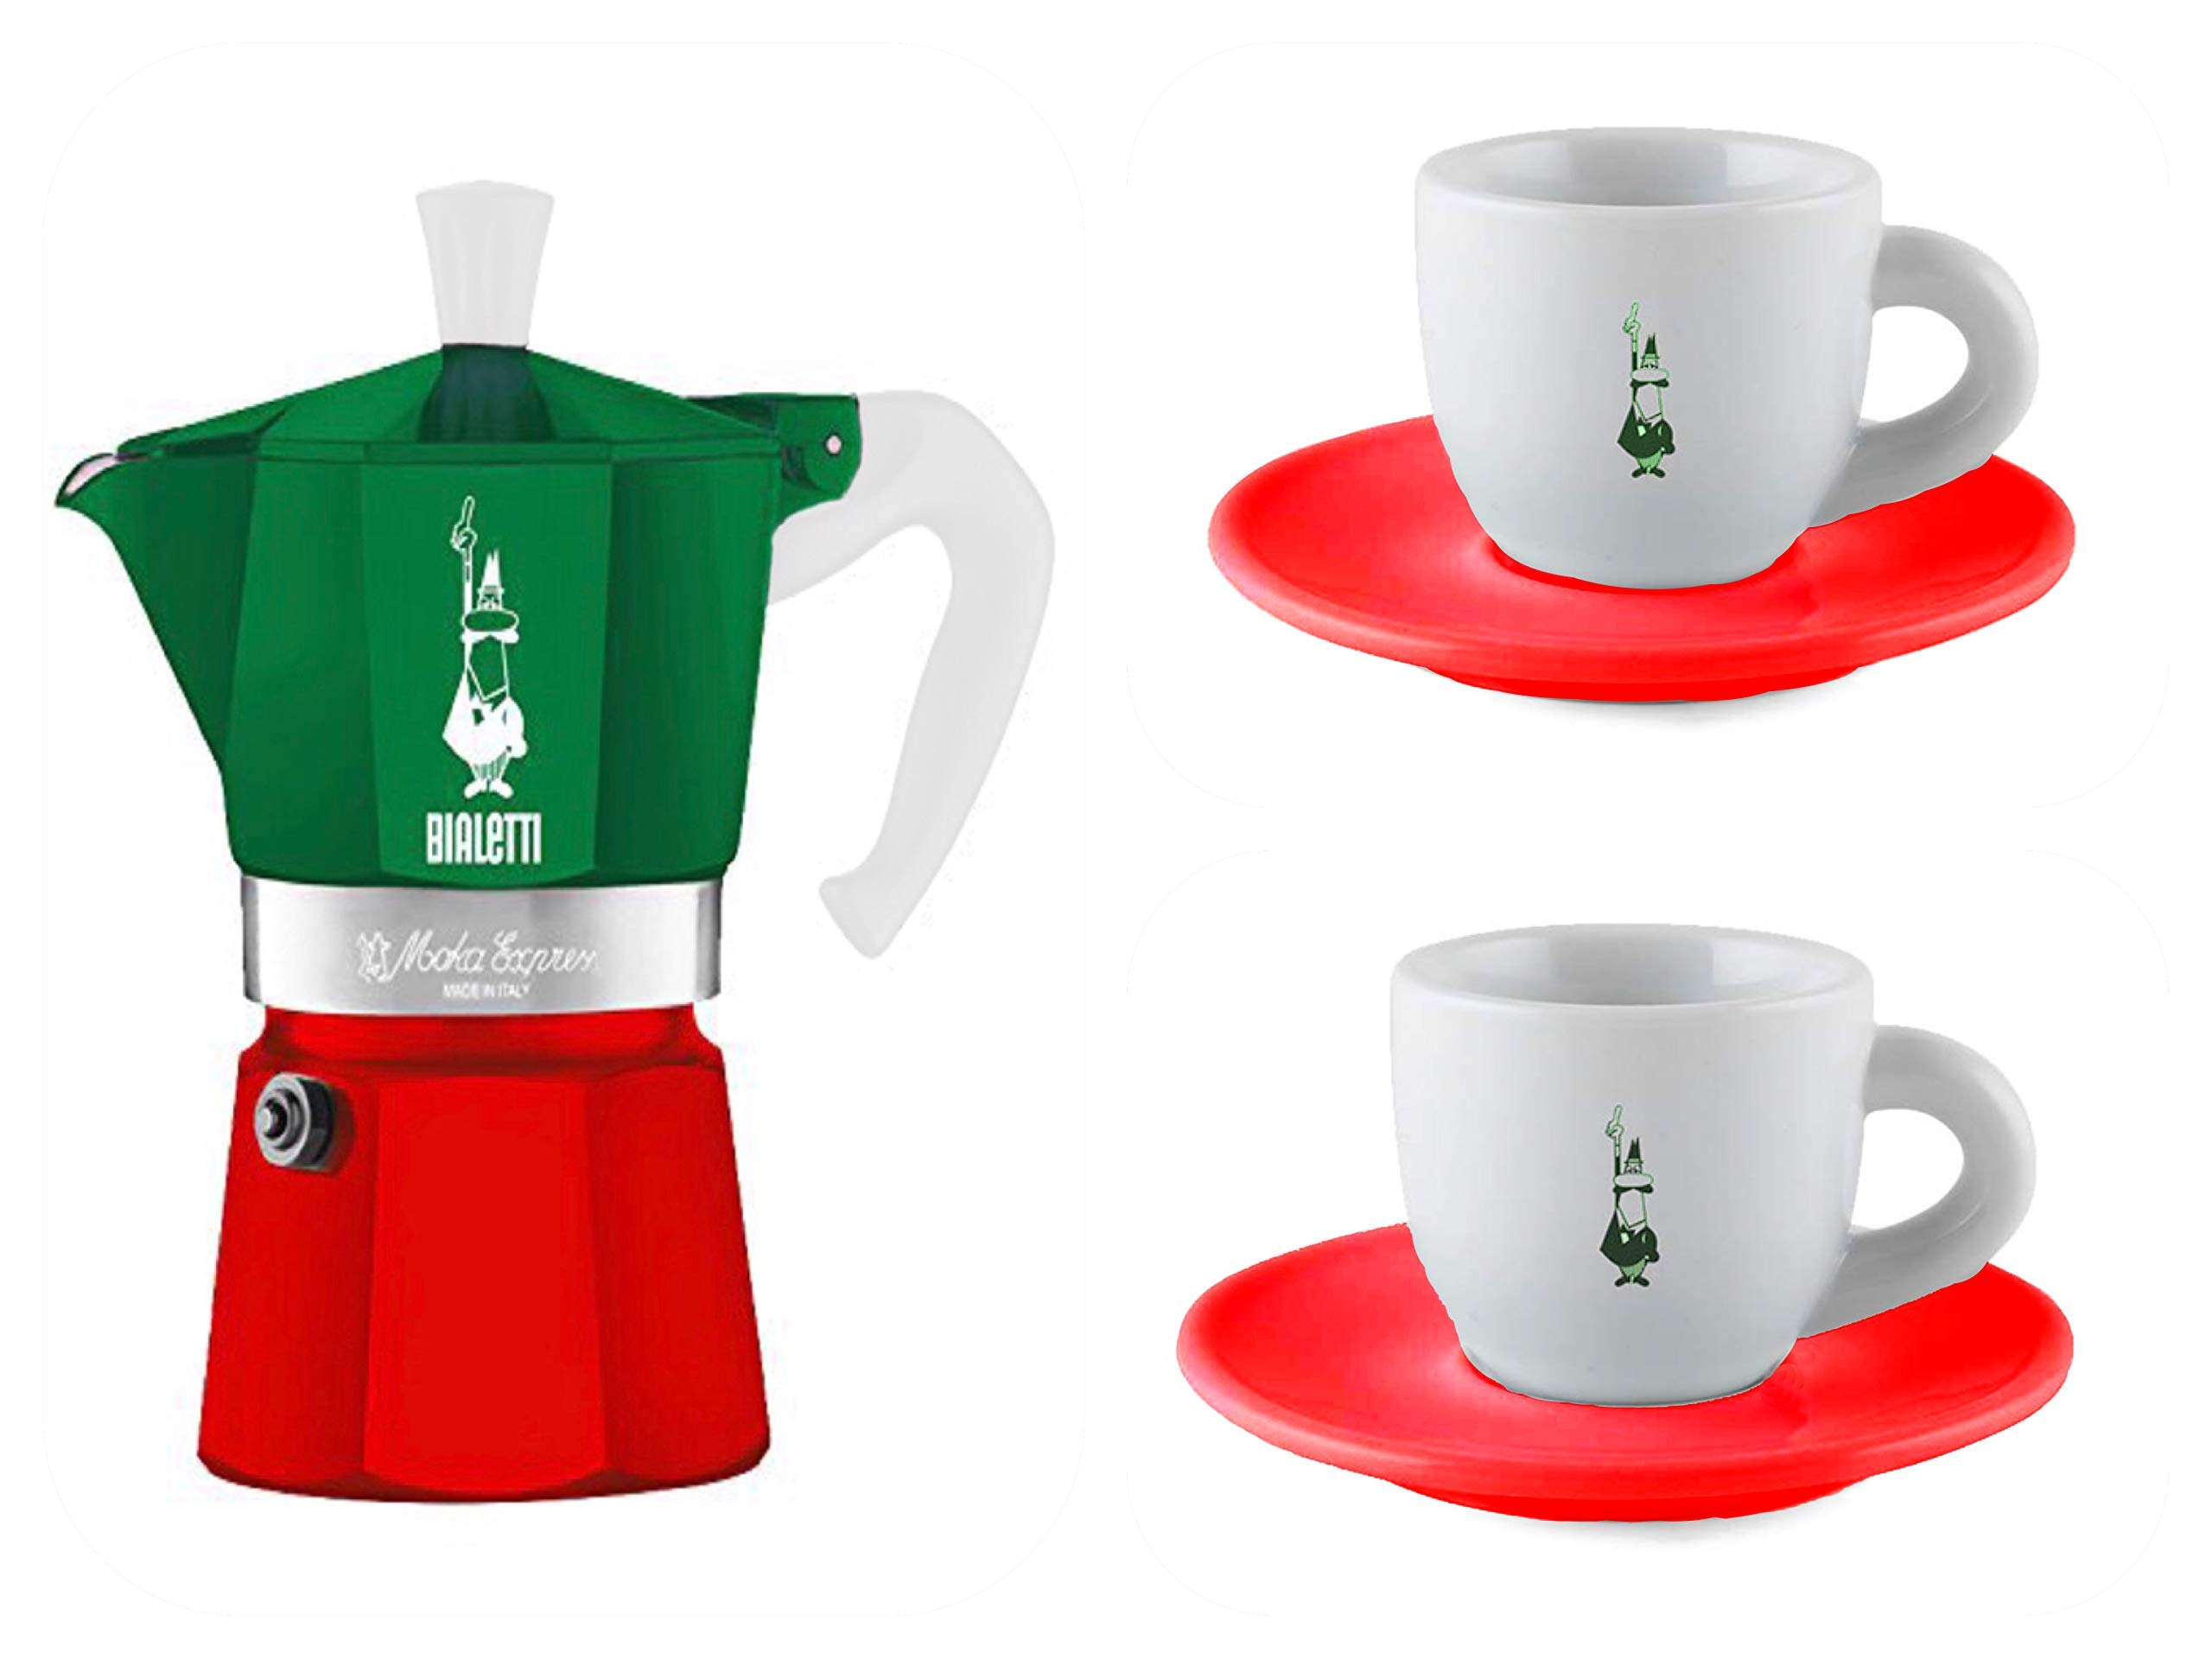 Bialetti 2-Cup Moka Express Italy Flag(Tricolor) Gift Set (2 Espresso Cups/Saucers Included) Limited Edition